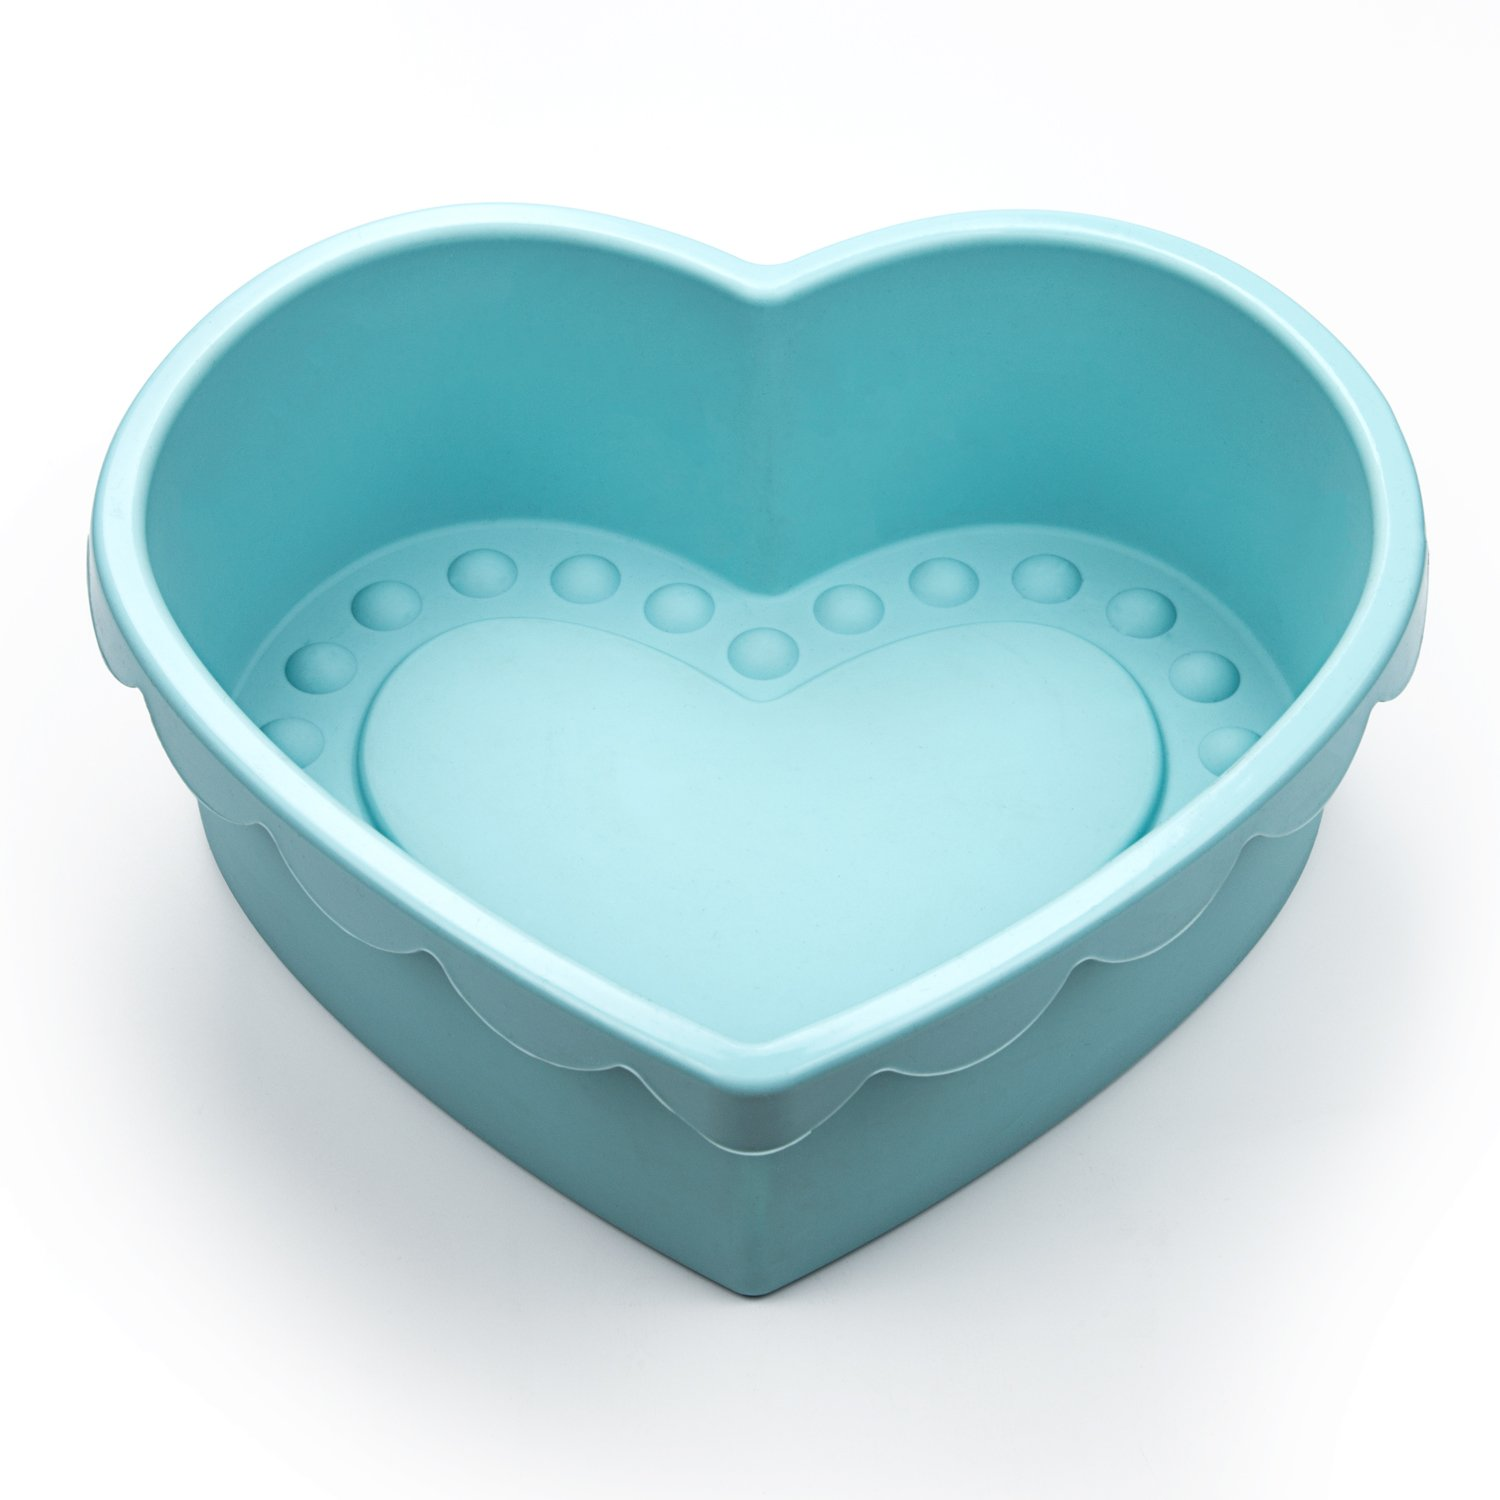 Heart Shape Silicone Baking Mold Nonstick Cake Pan 9 Inch Baking Pan Big for Cake Bread Pie Flan Tart DIY - FDA & BPA Free (9.8''x9''x2.8'') - Blue